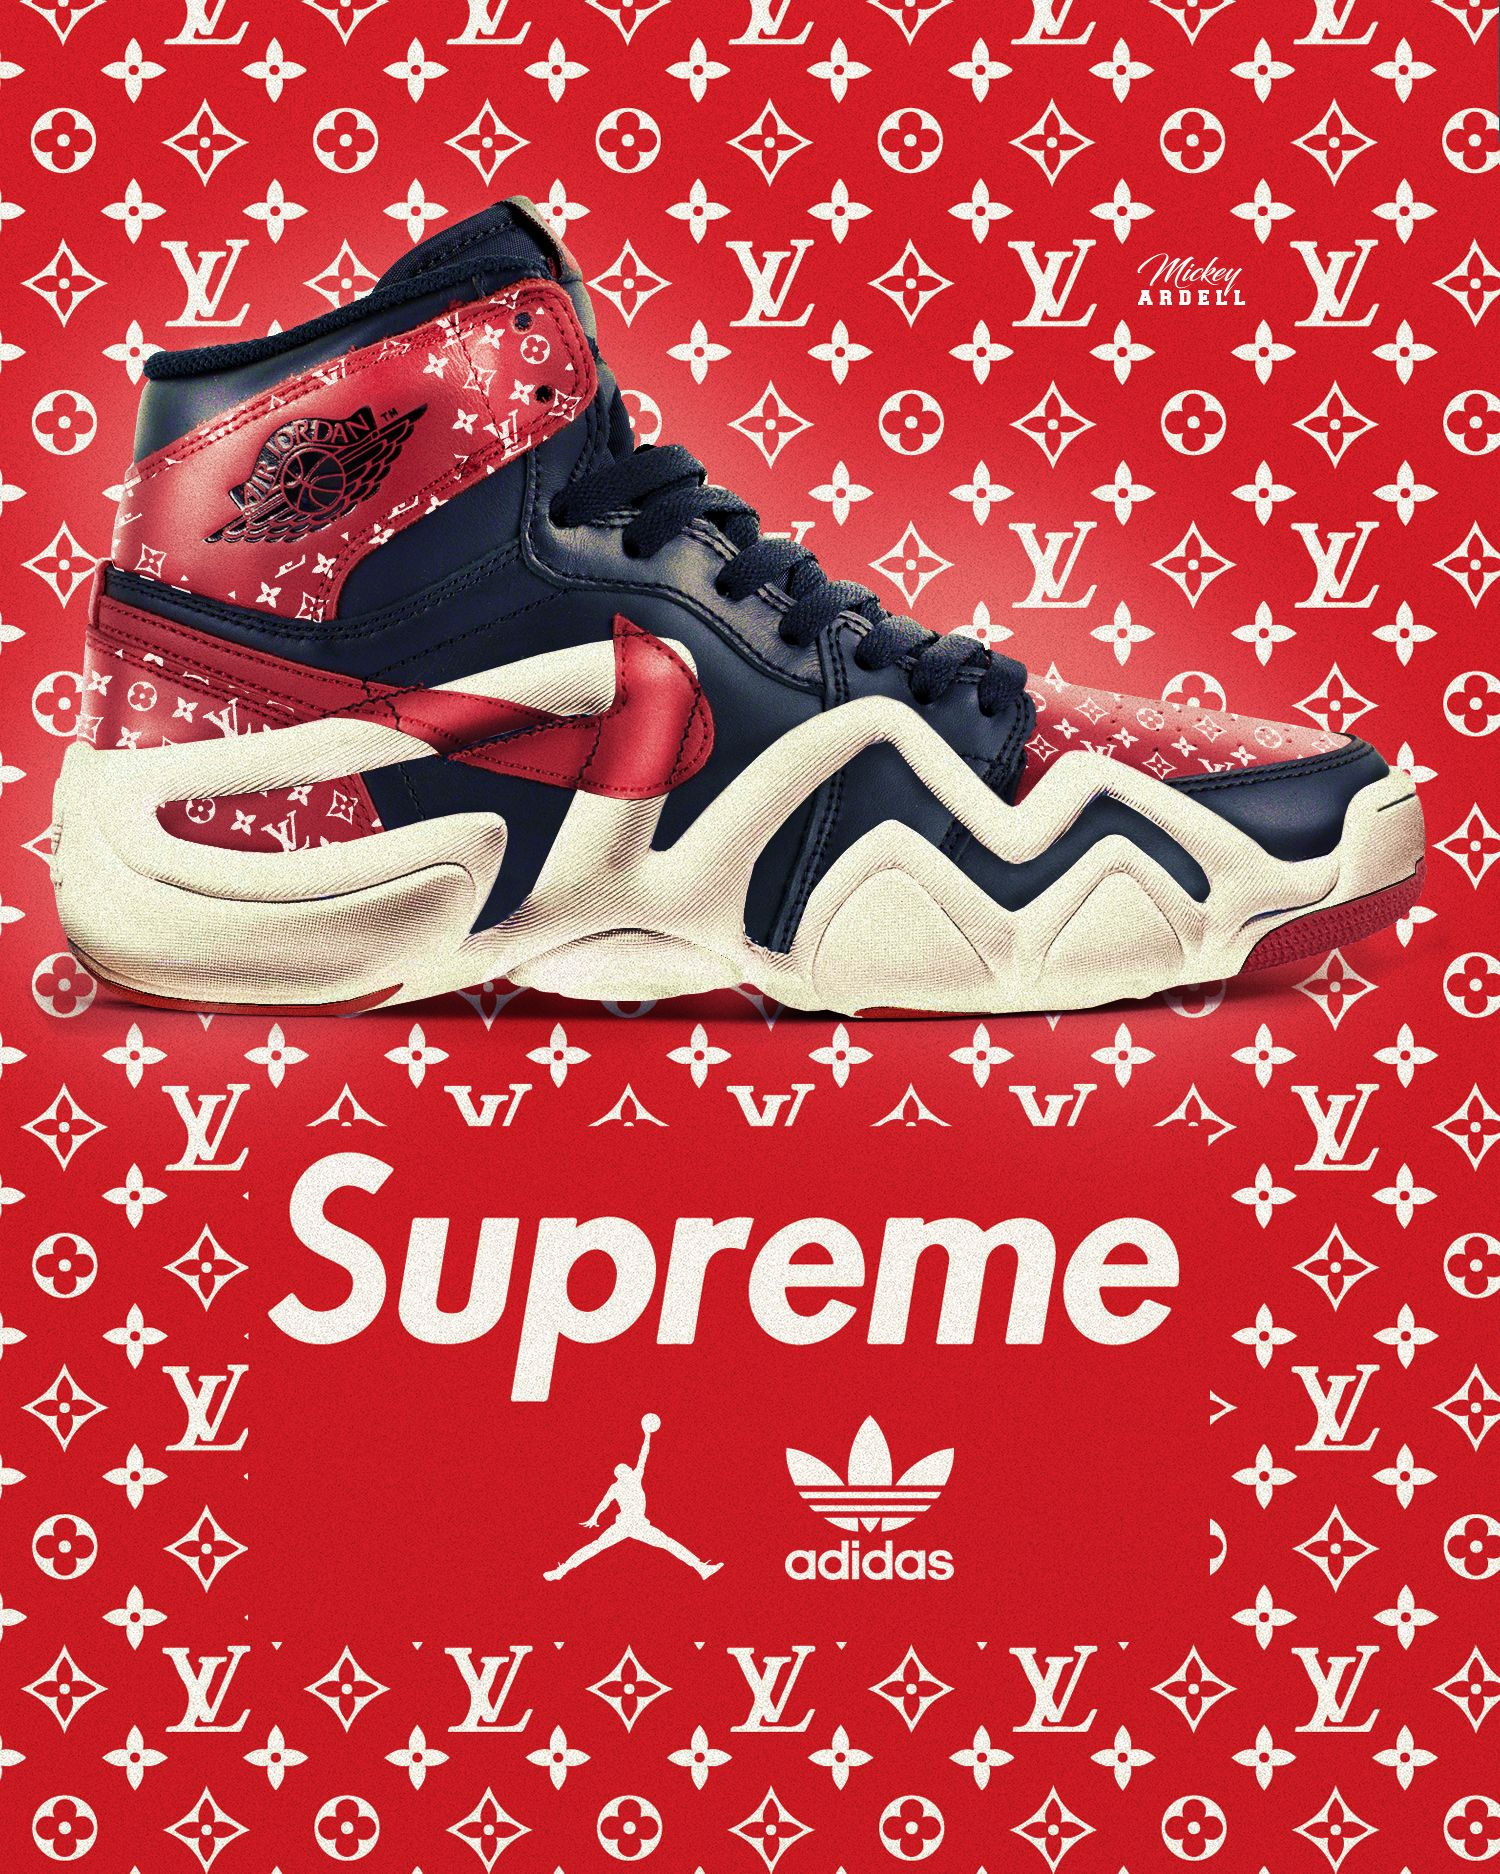 Louis Vuitton x Supreme x Adidas Originals x Air Jordan collab  wmcskills 83828fb34